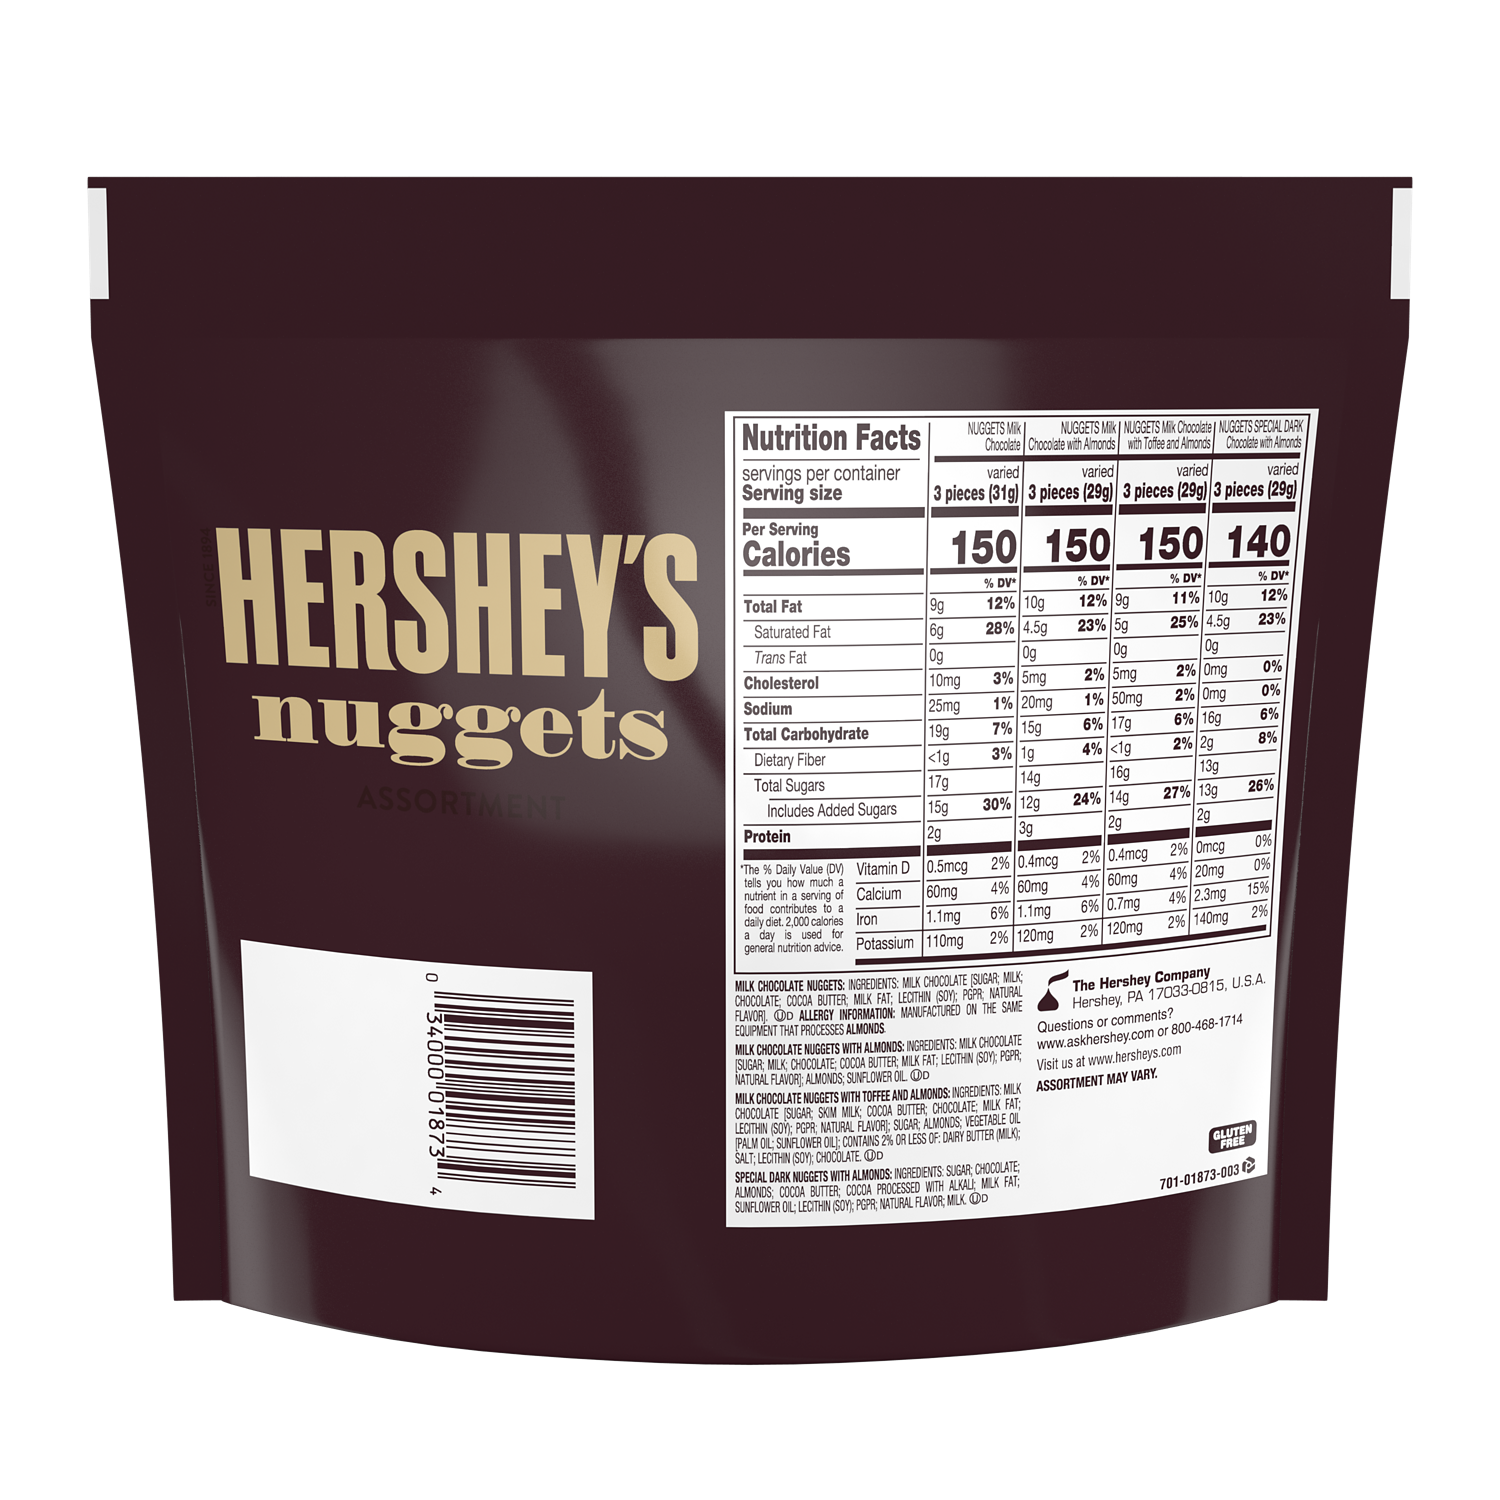 HERSHEY'S NUGGETS Assortment, 15.6 oz pack - Back of Package